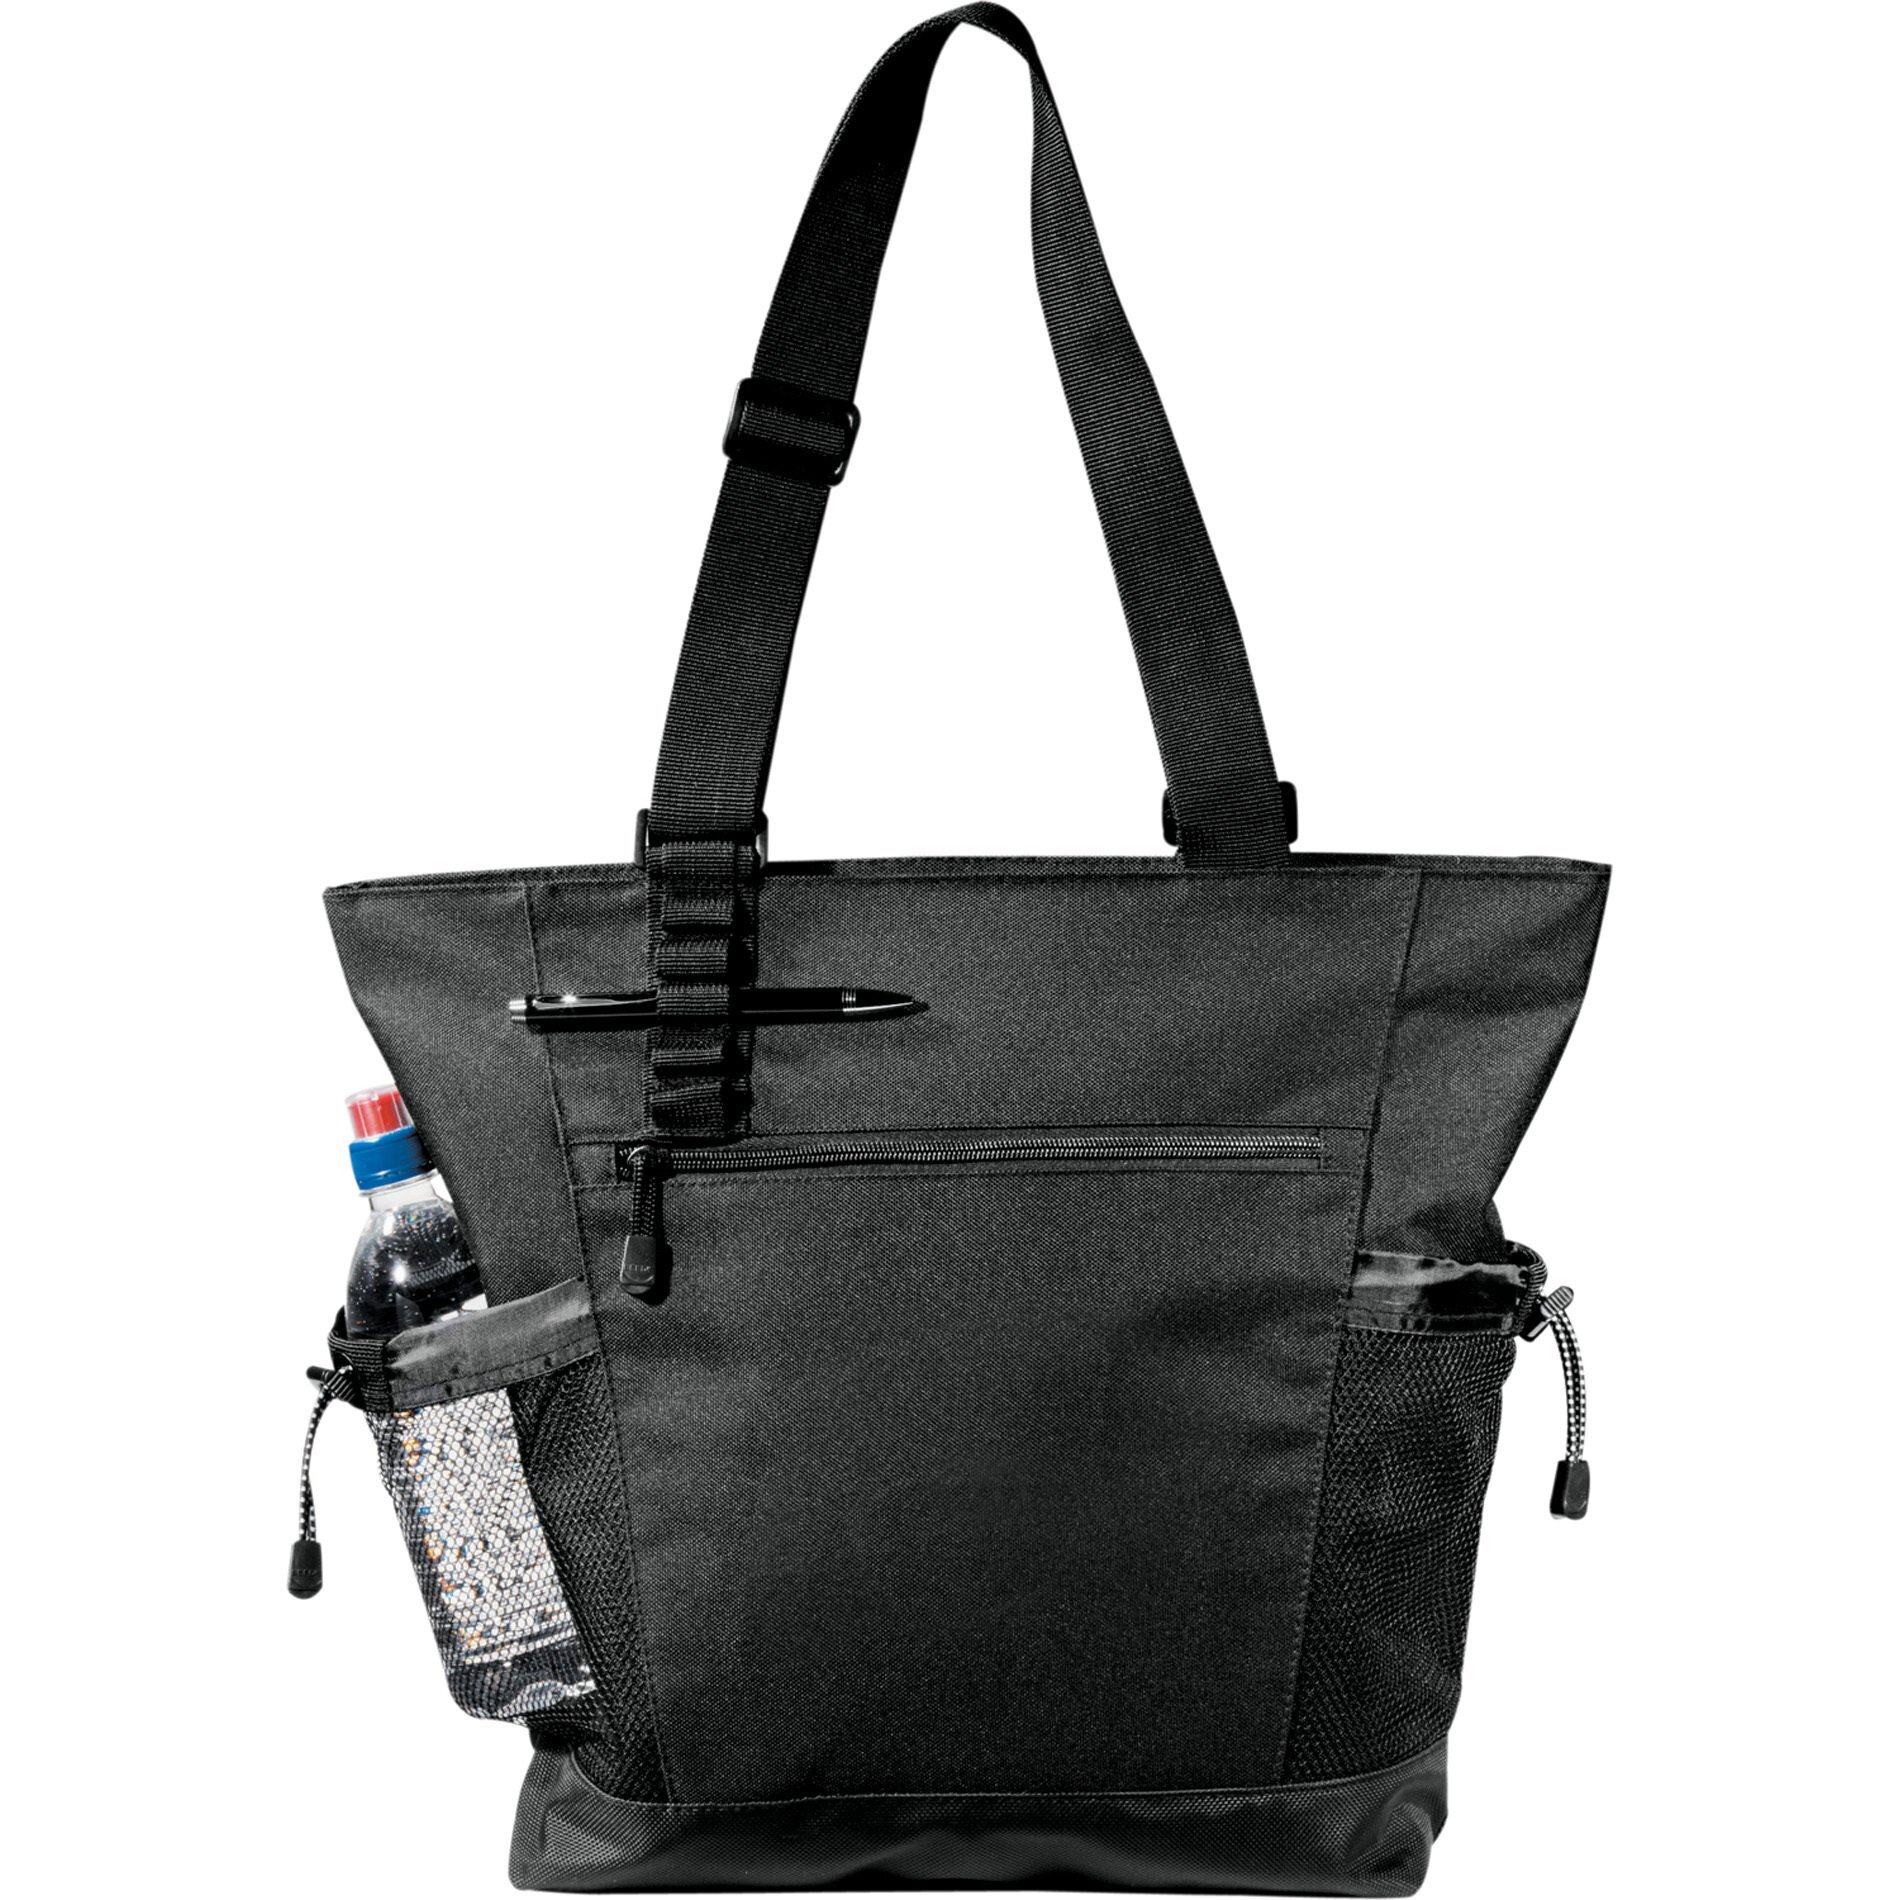 Urban Passage Polycanvas Zippered Travel Tote